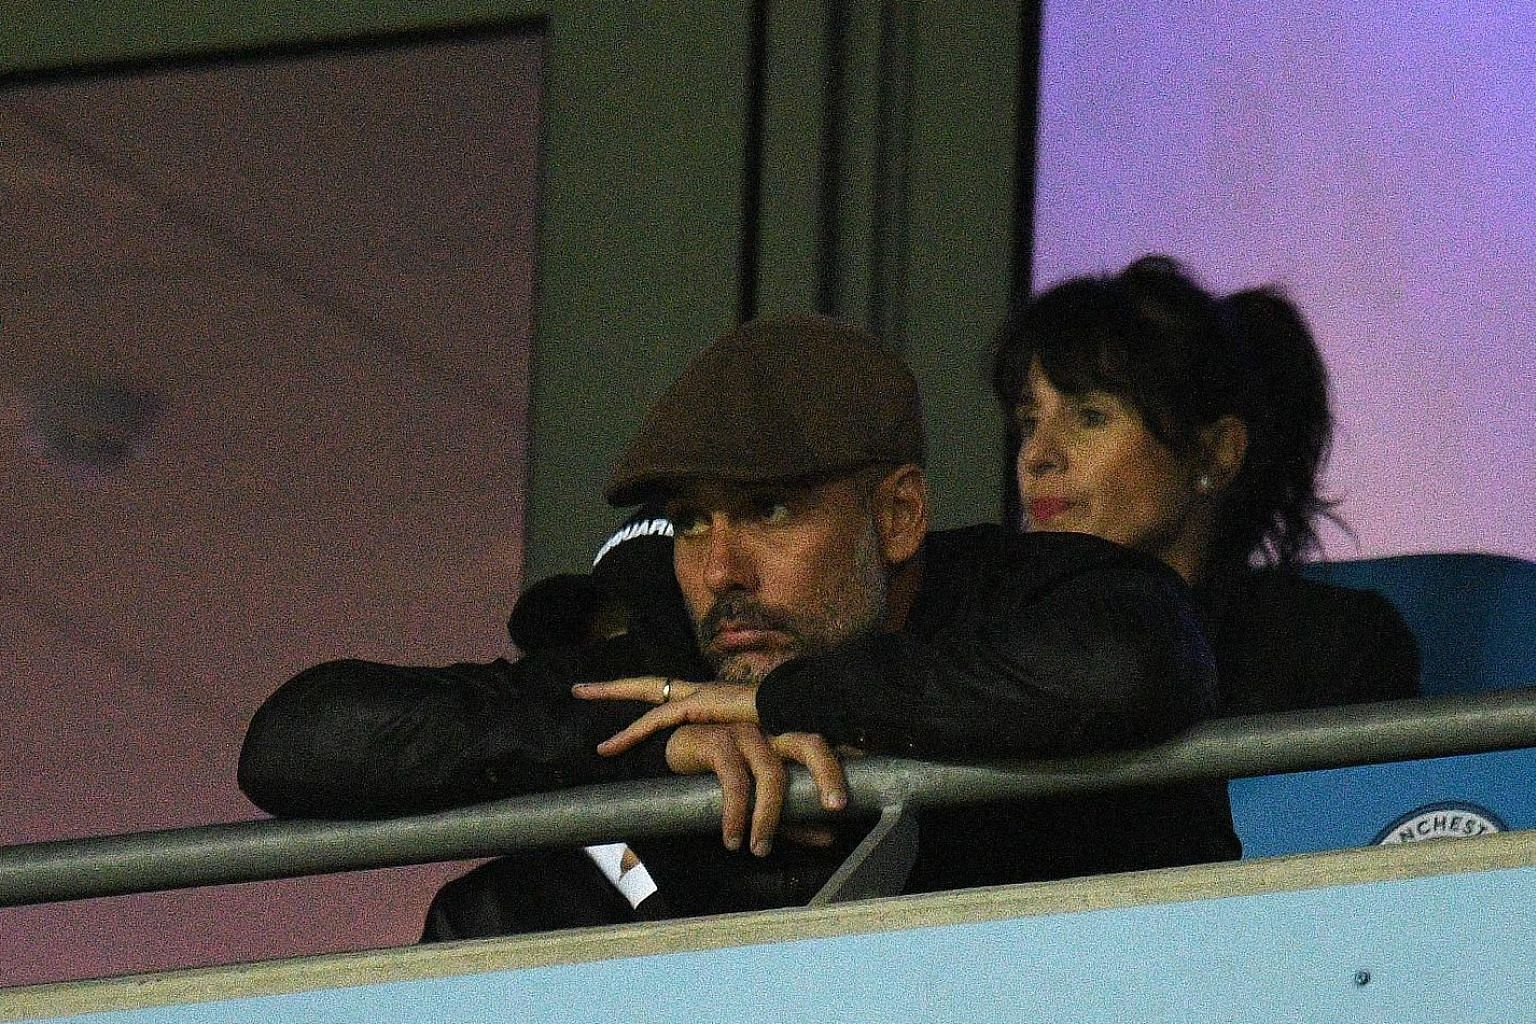 Manchester City's Spanish manager Pep Guardiola cutting a disconsolate figure from the stands during the Champions League match against Lyon at the Etihad Stadium on Wednesday, when the visitors won 2-1.